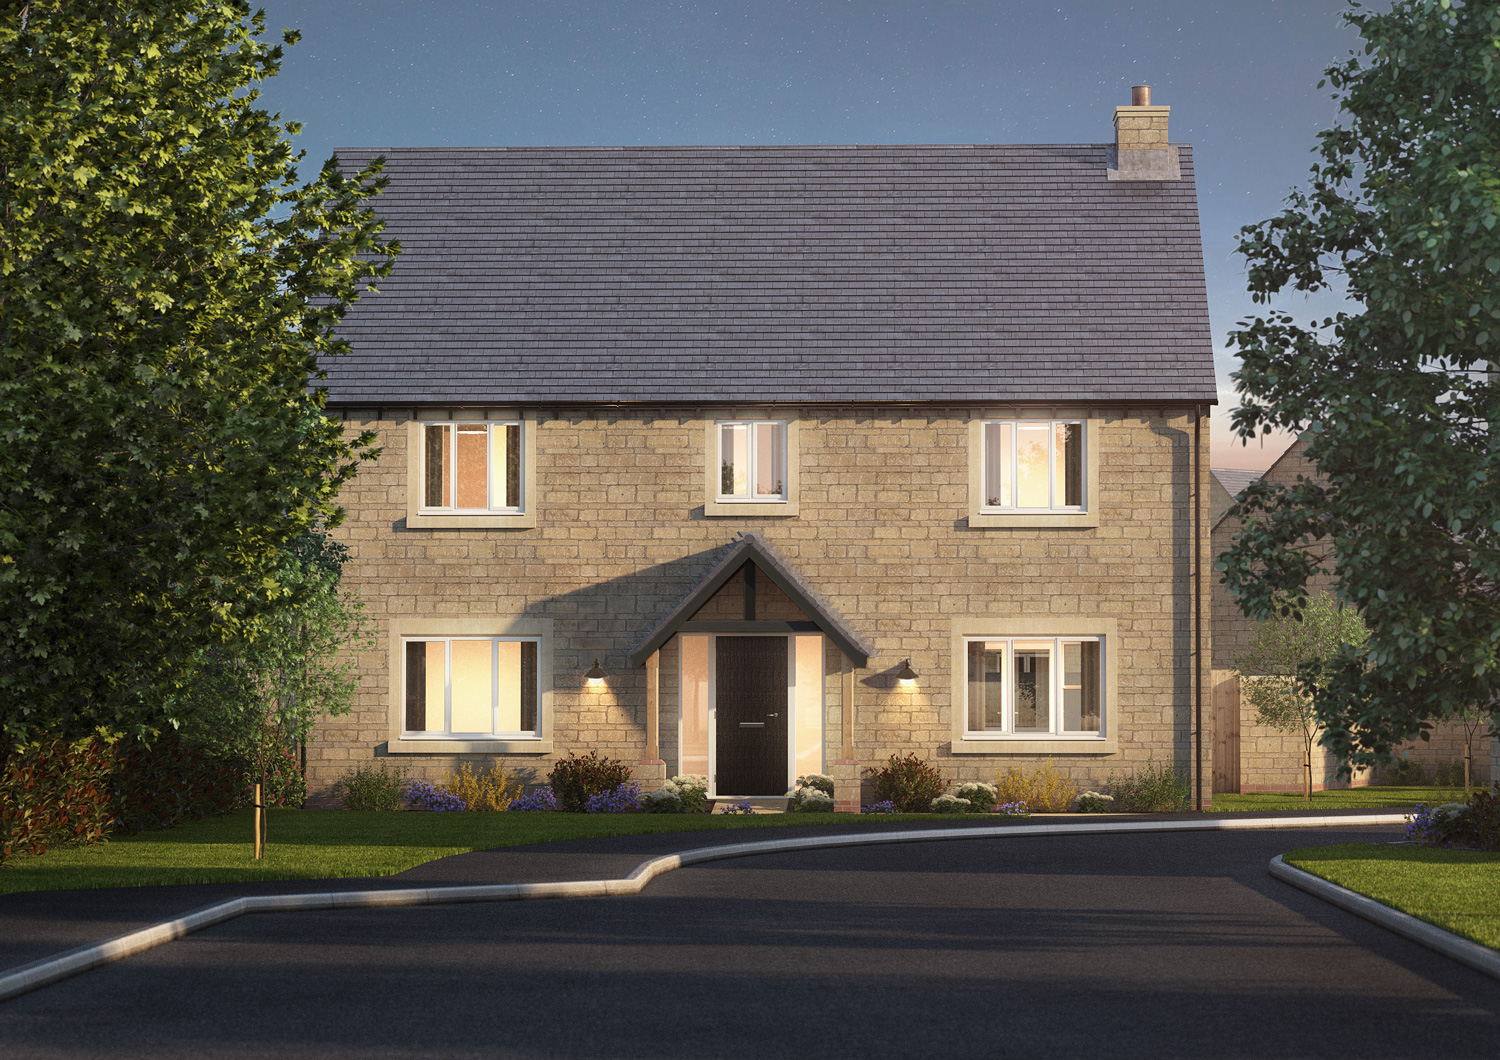 The Cropredy - 5 BEDROOM HOUSESHOMES 1(THE SHOW HOME), 9, 10, 13, 28, 32 & 44